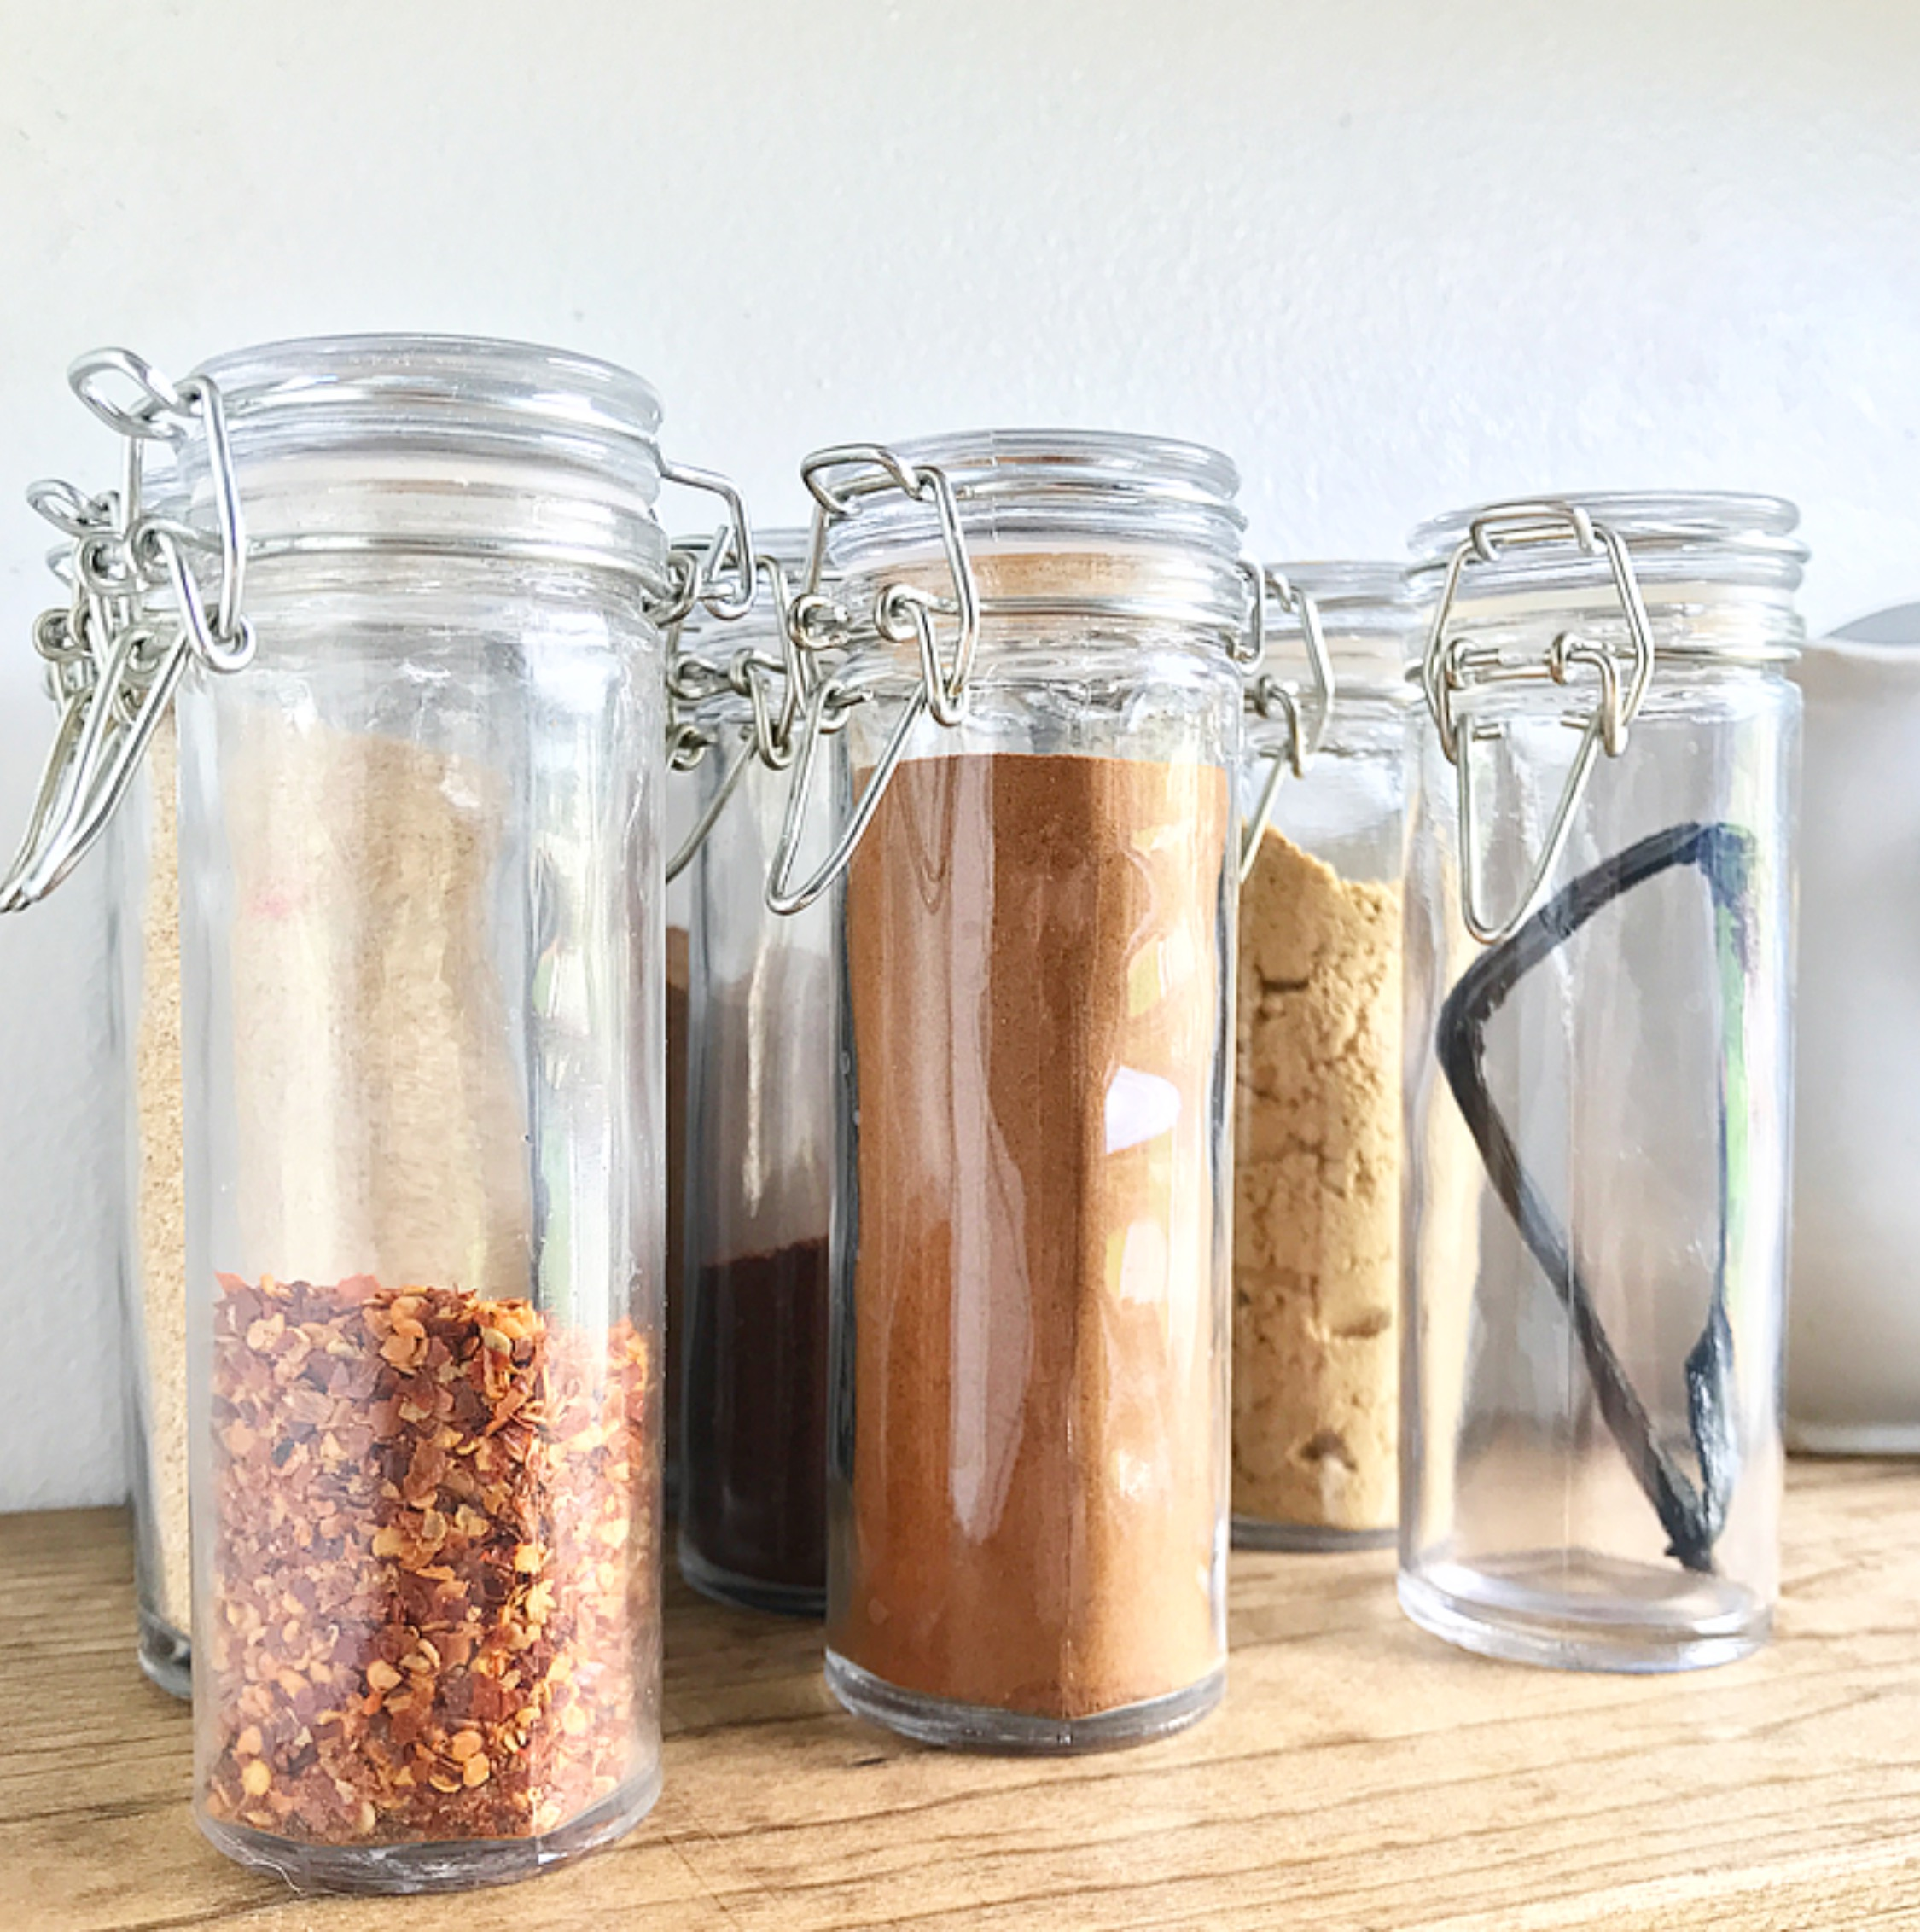 Space in the kitchen by adding shelves and glass canisters with seals - I Have Never Been Big On Labels Especially Since I Am Always Changing Things Up So I Opted For A Cleaner Look However I Still Need To Know What Spice Is